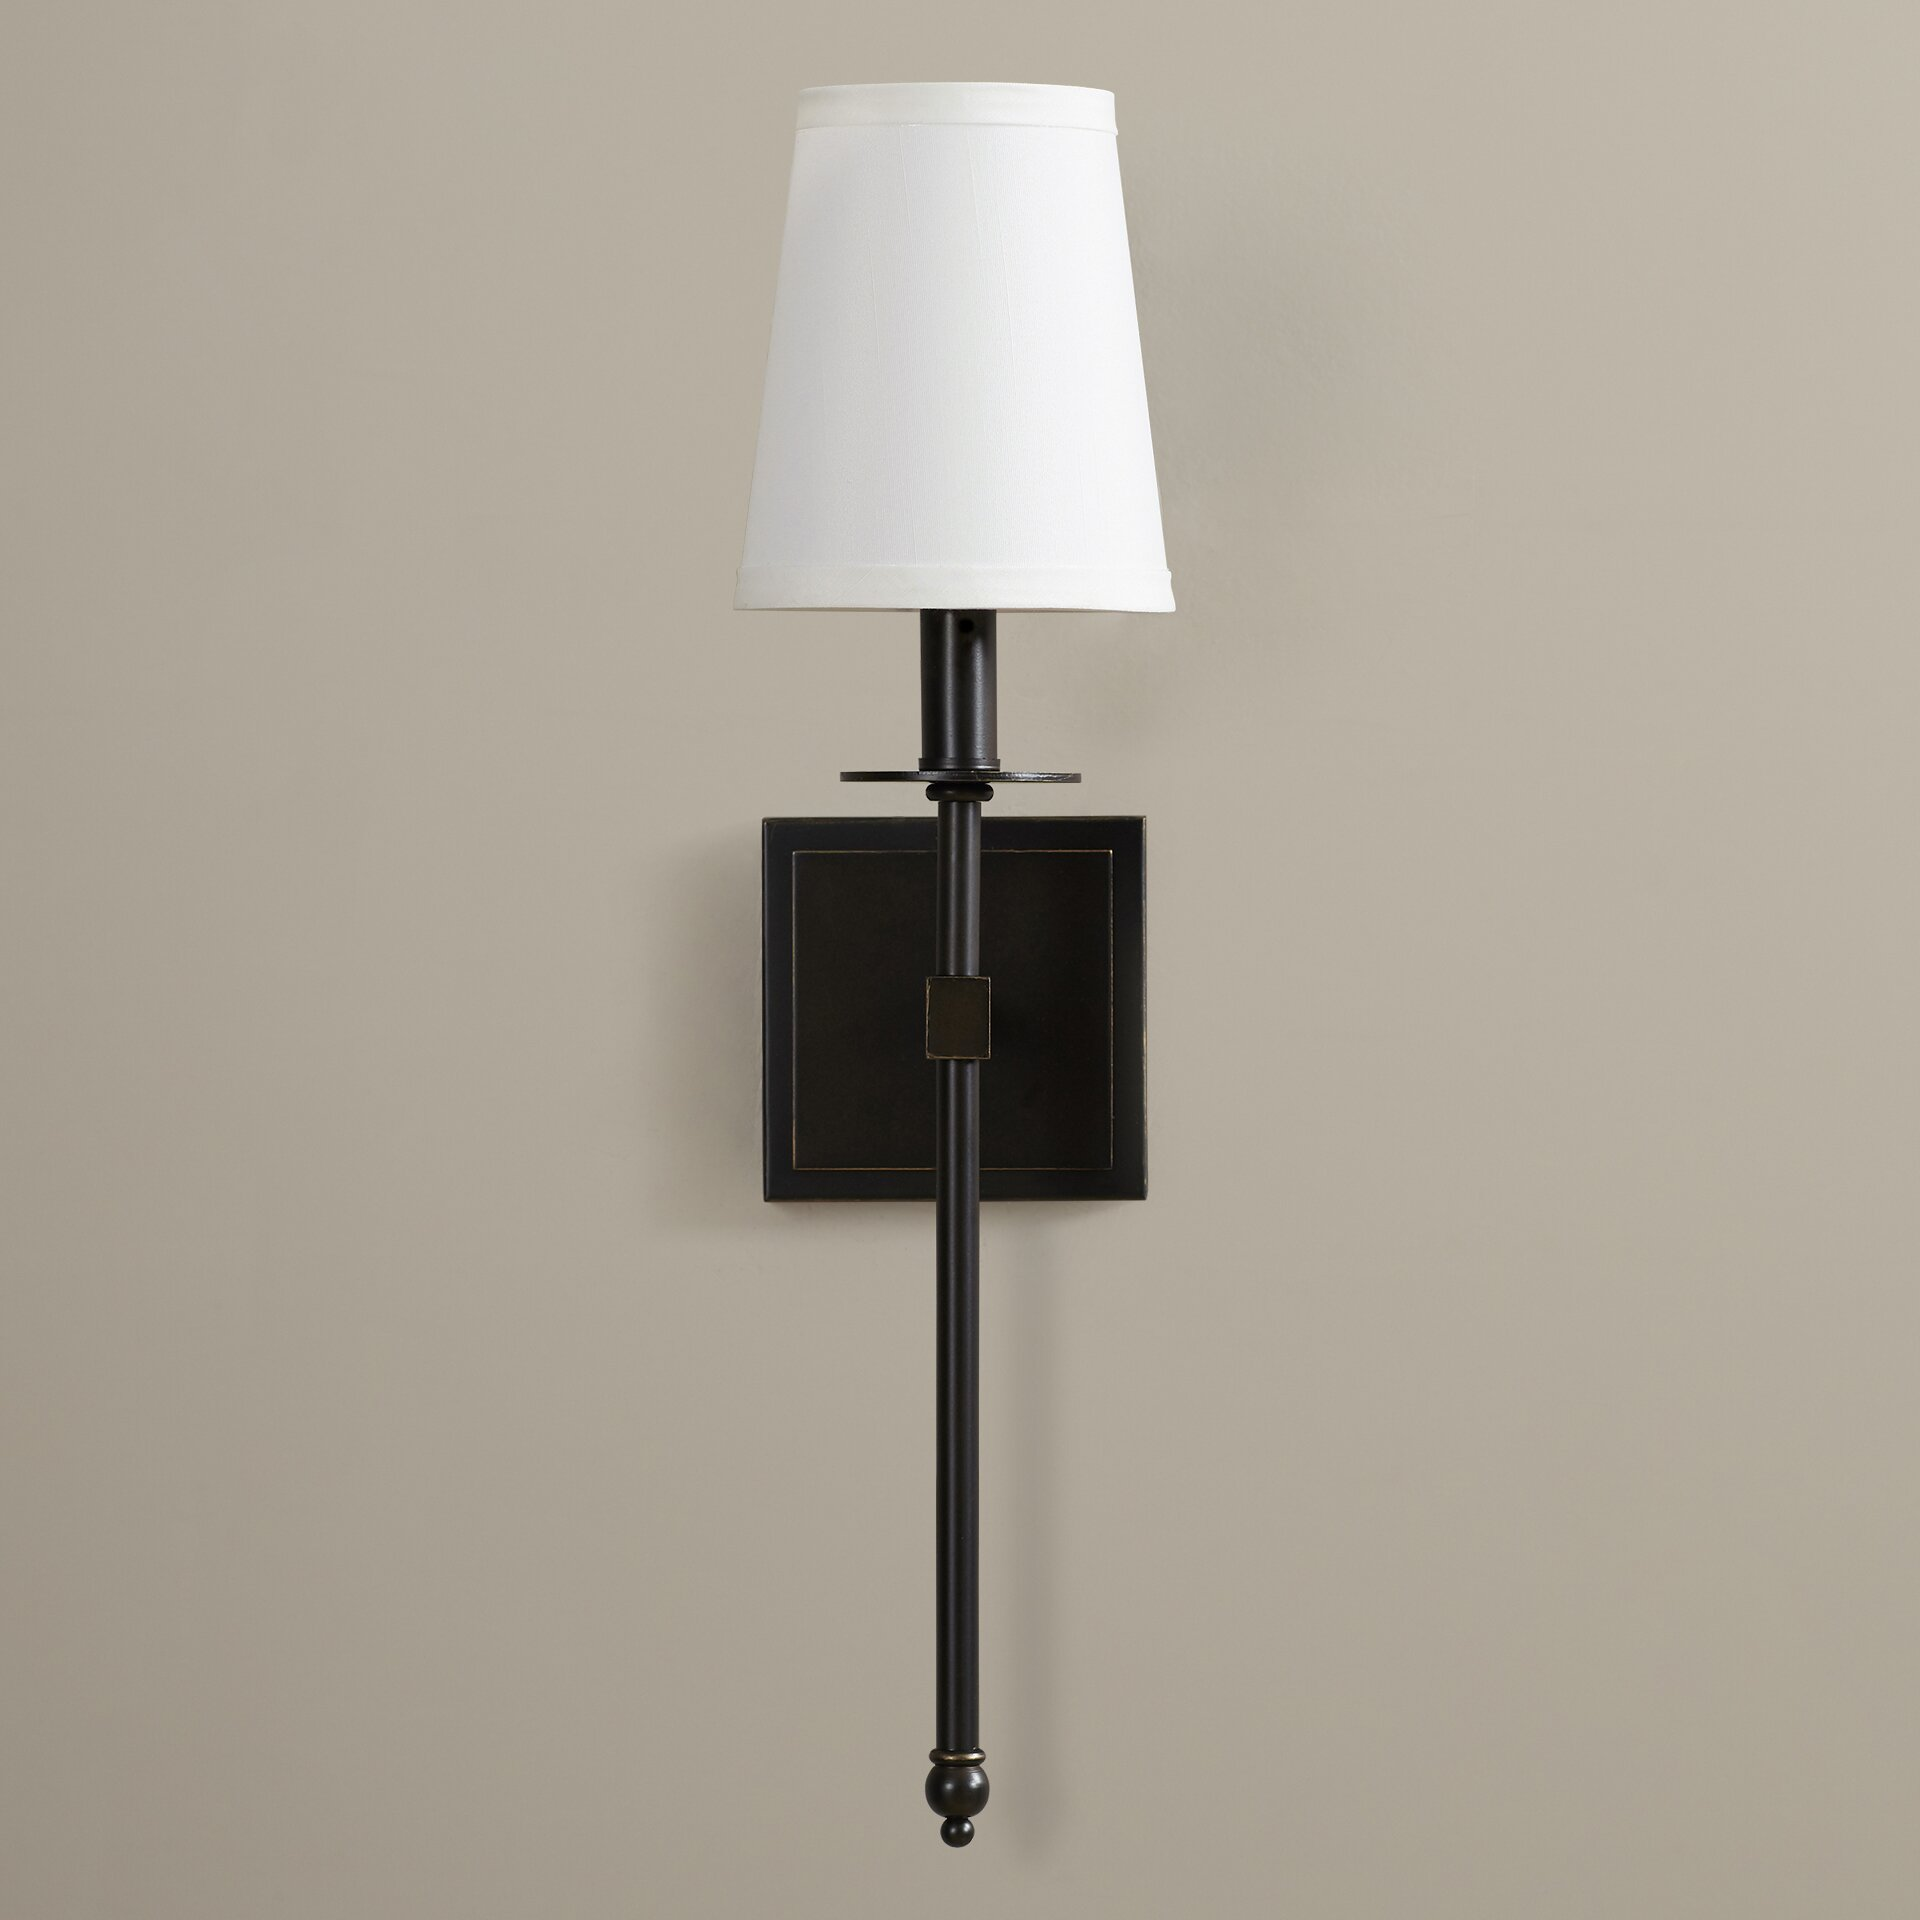 Wall Sconces At Wayfair : Three Posts Cooperstown 1 Light Wall Sconce & Reviews Wayfair